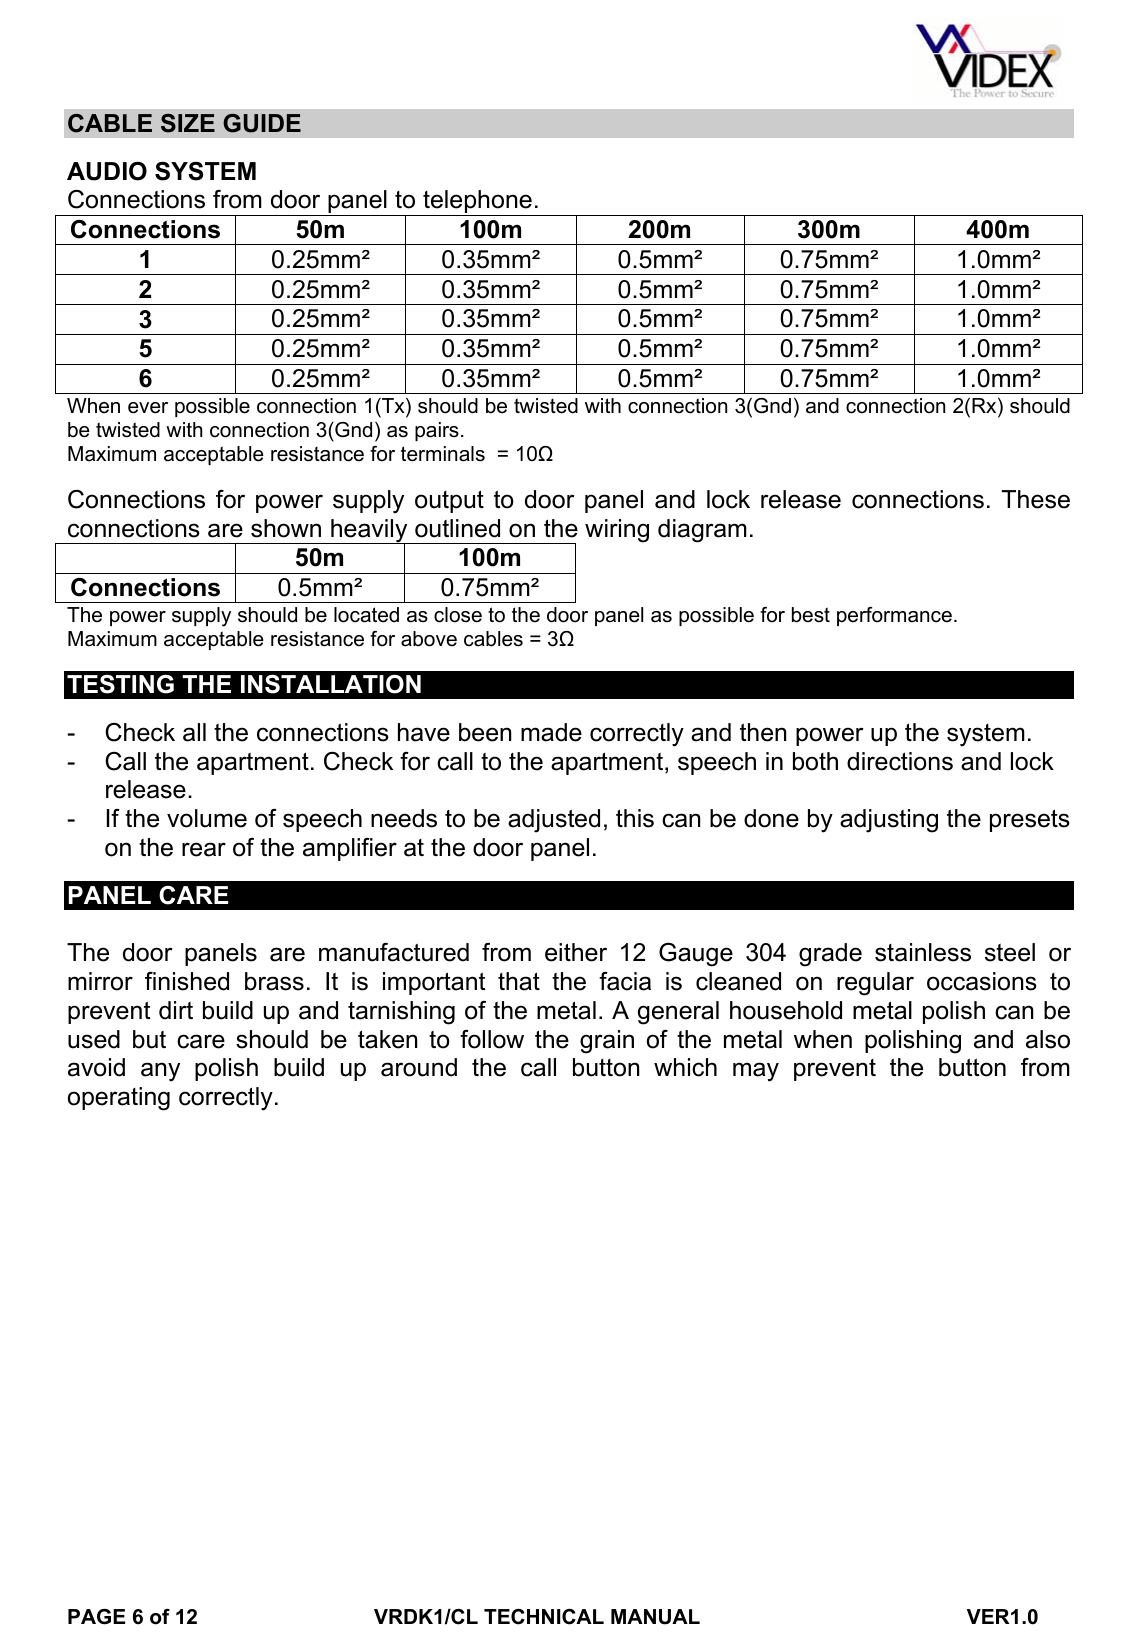 hight resolution of page 6 of 12 vrdk1clmanual videx vrdk1cl manual with codelock